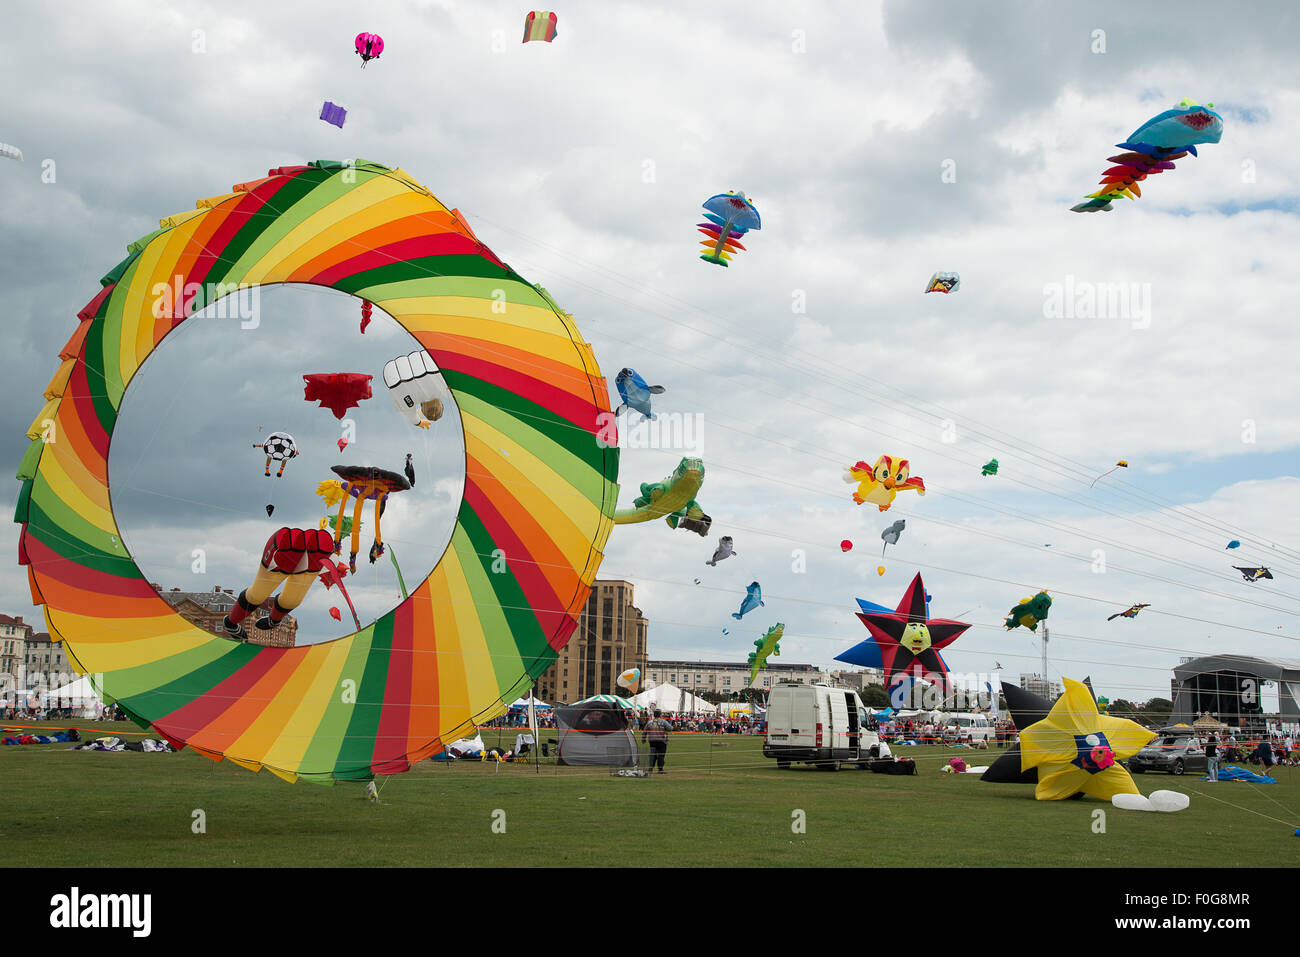 Portsmouth, UK. 15th August 2015. A huge rotating kite takes off with a multitude of kites flying in the background Stock Photo